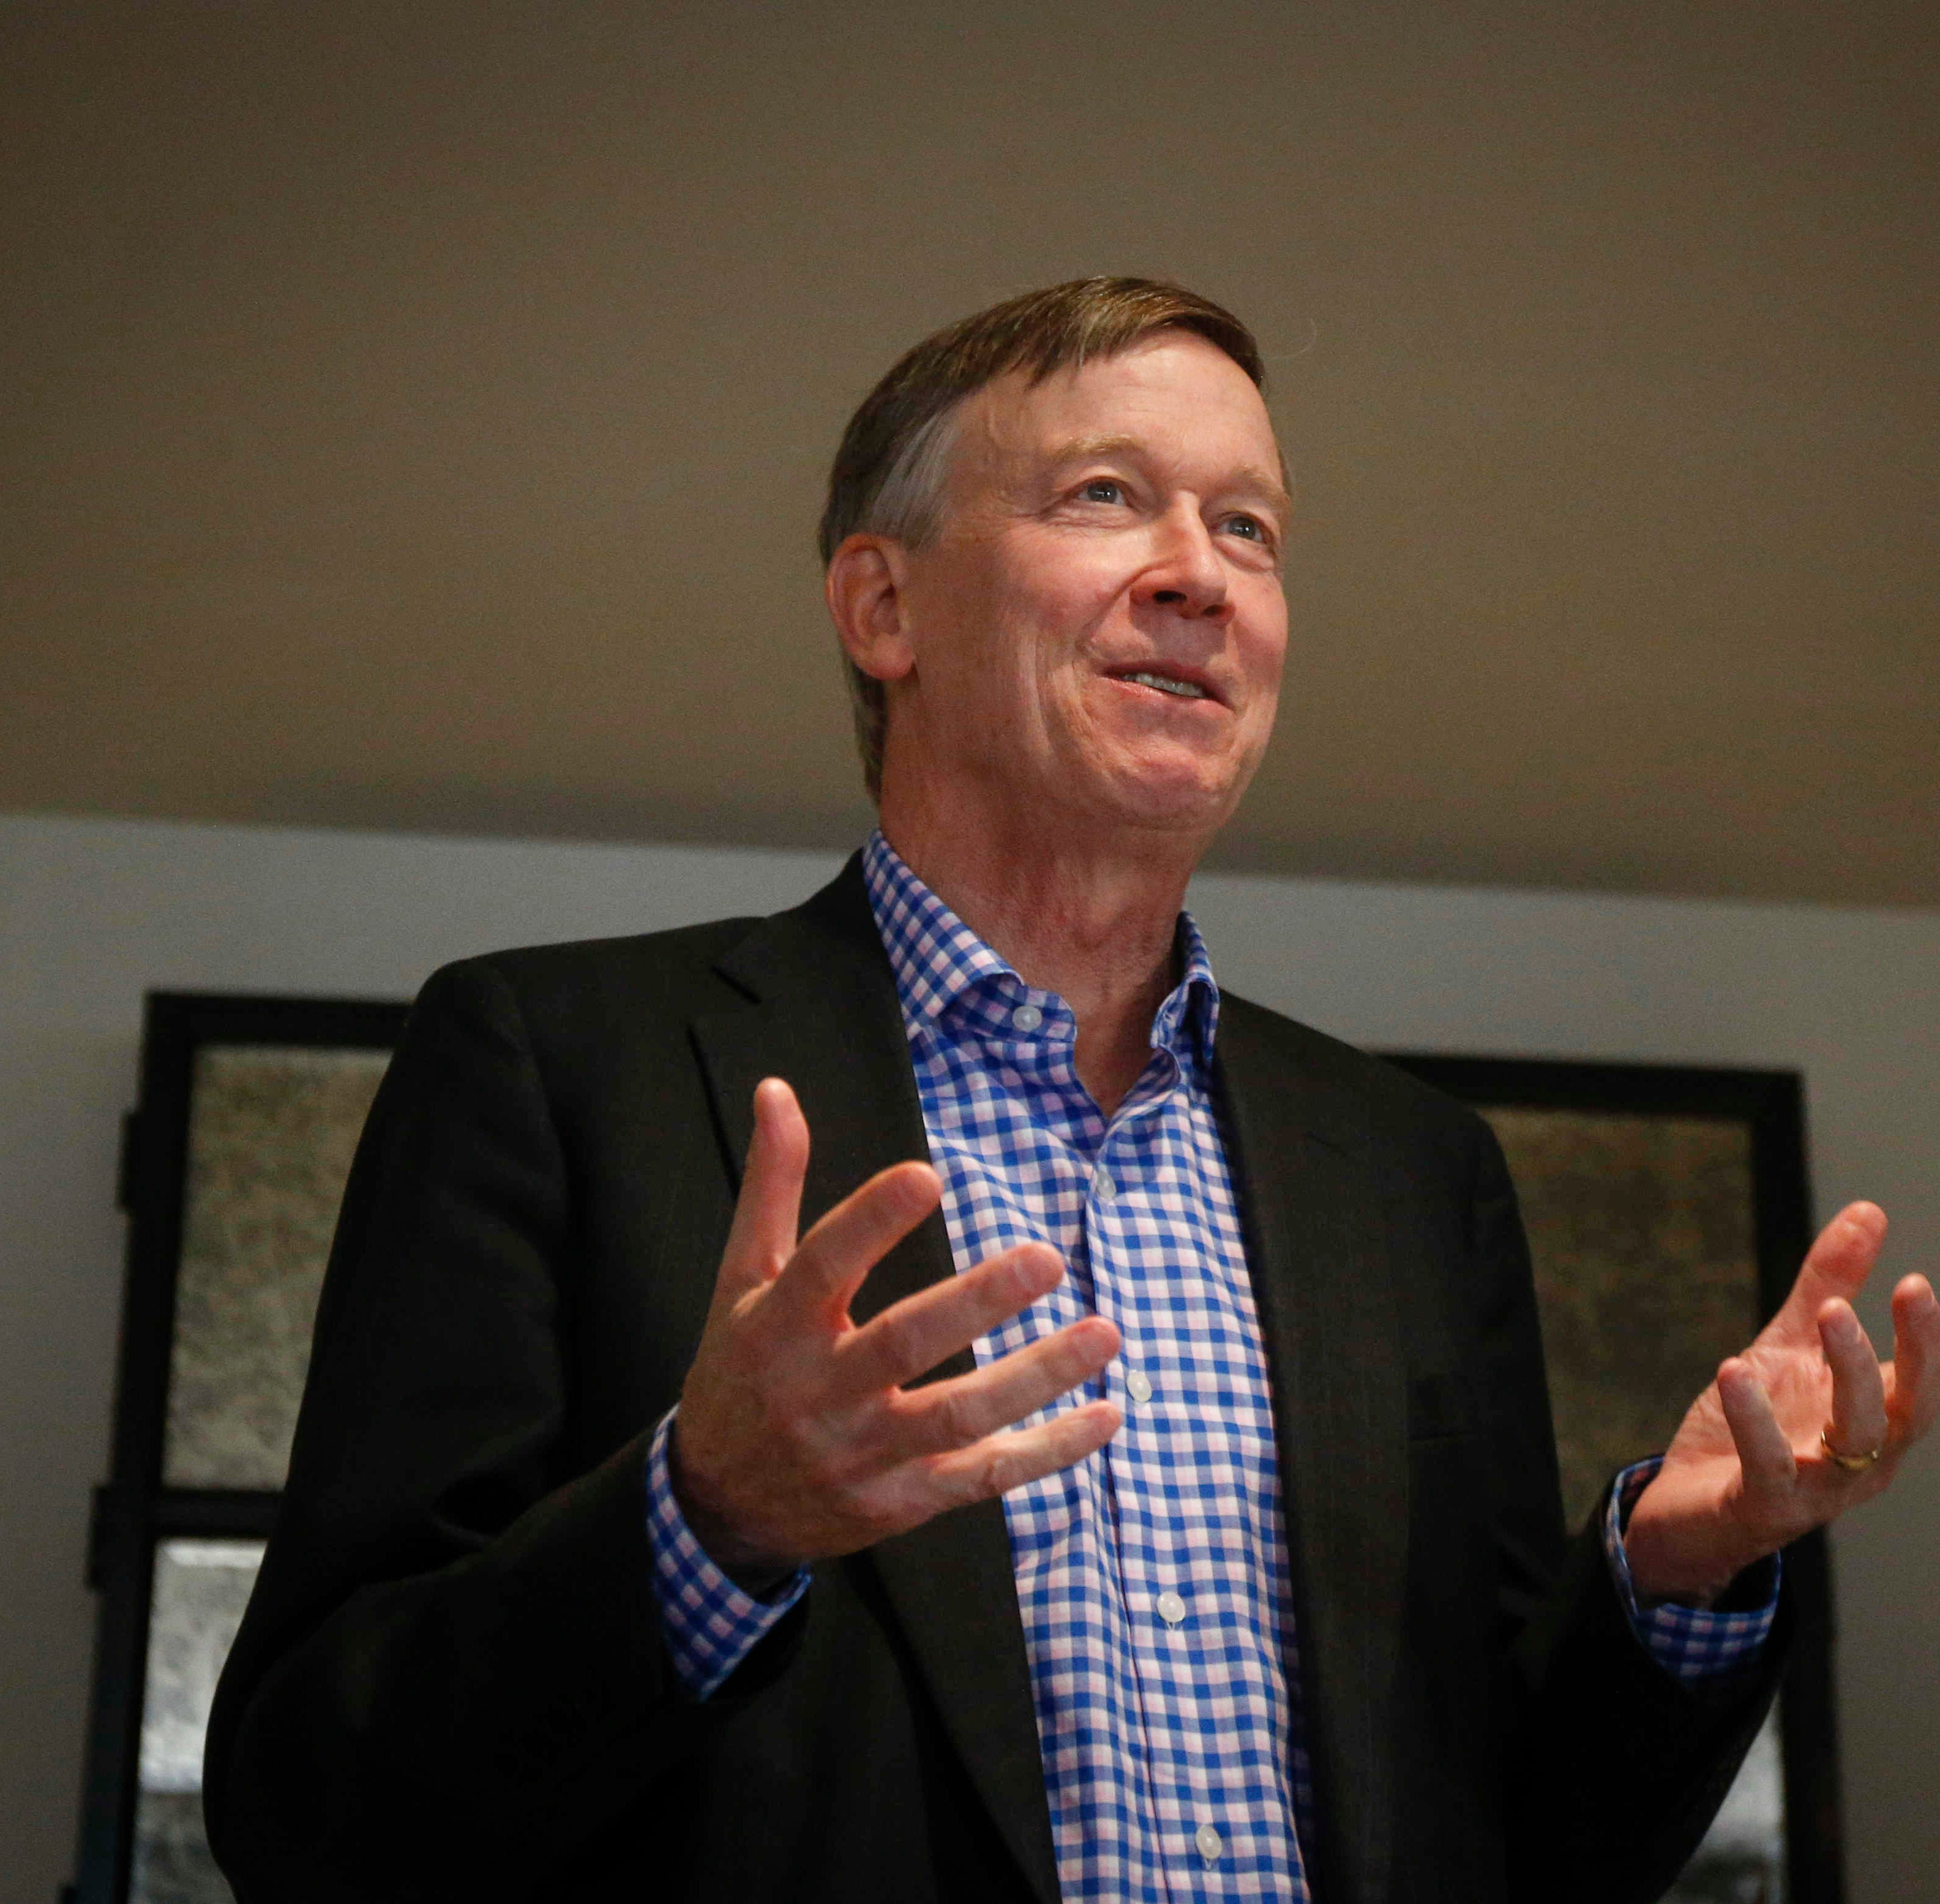 In Iowa, John Hickenlooper says he could bring unique voice to 2020 presidential race